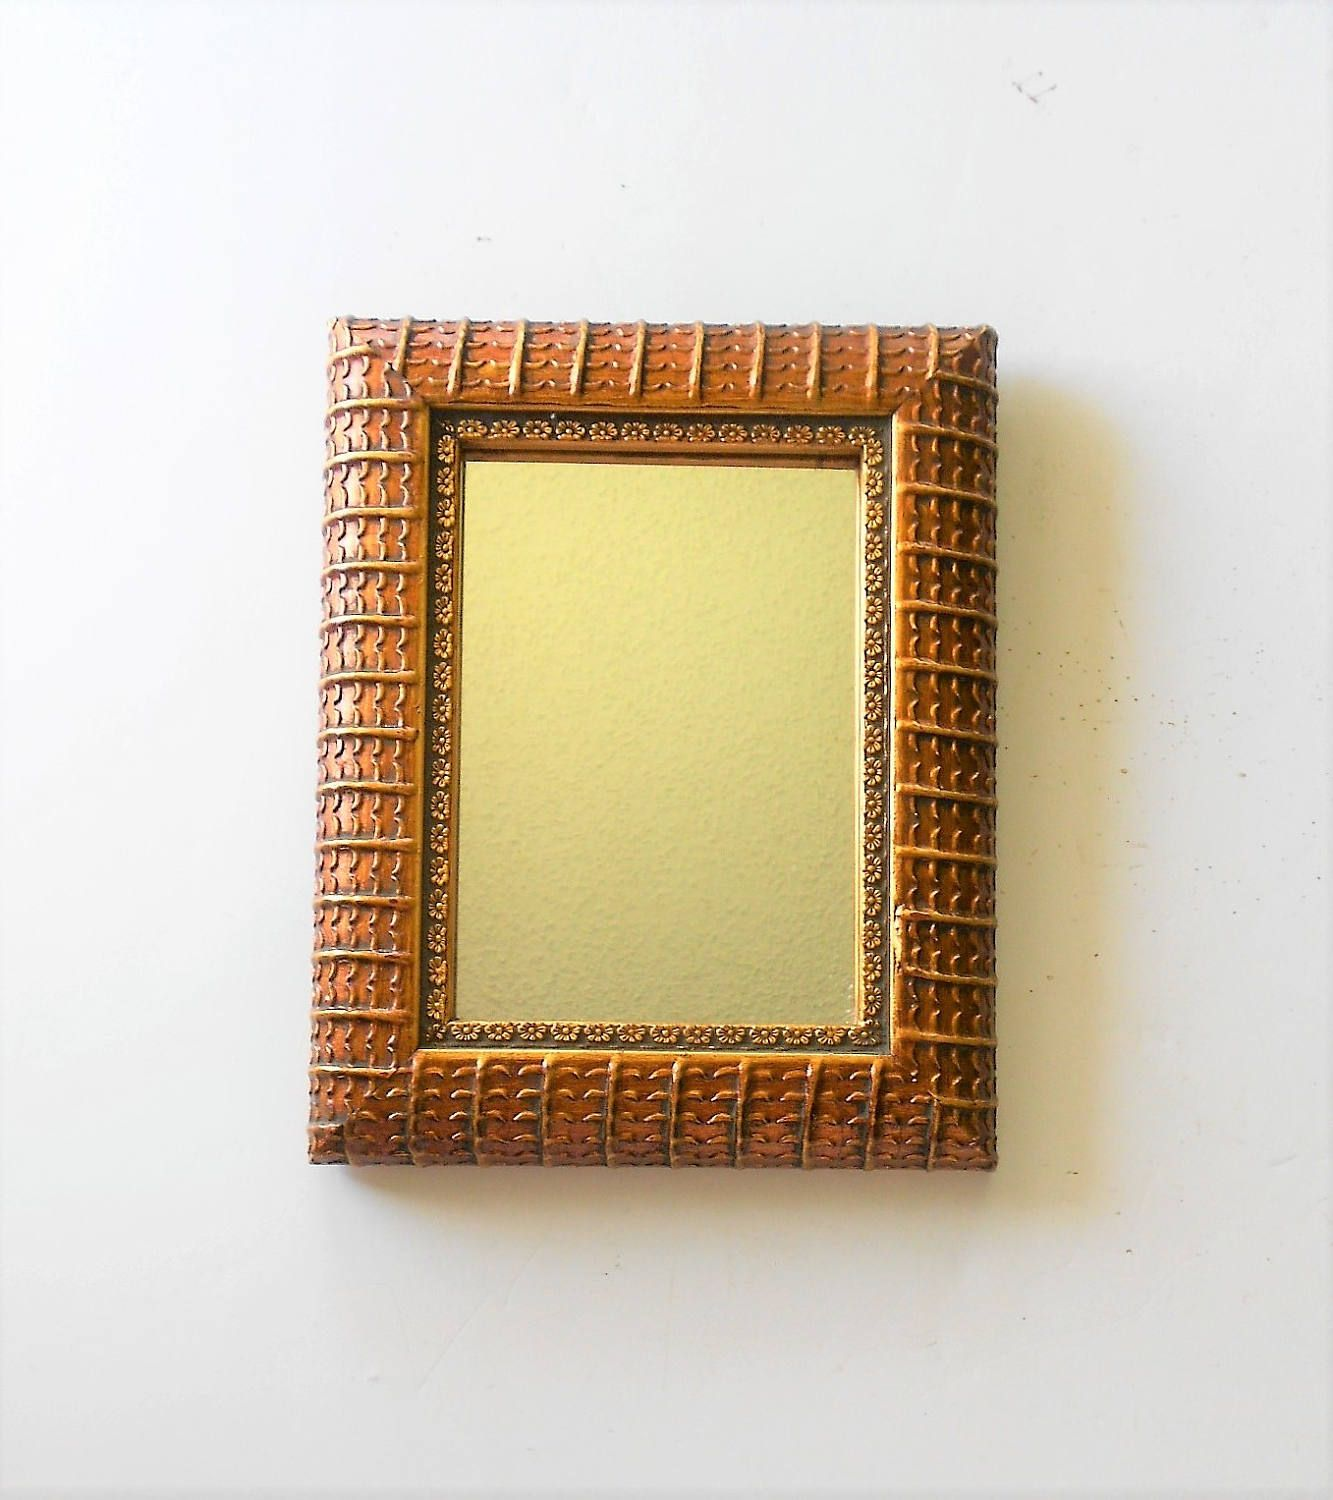 Contemporary Mirrors Decorative Wall Vignette - The Wall Art ...